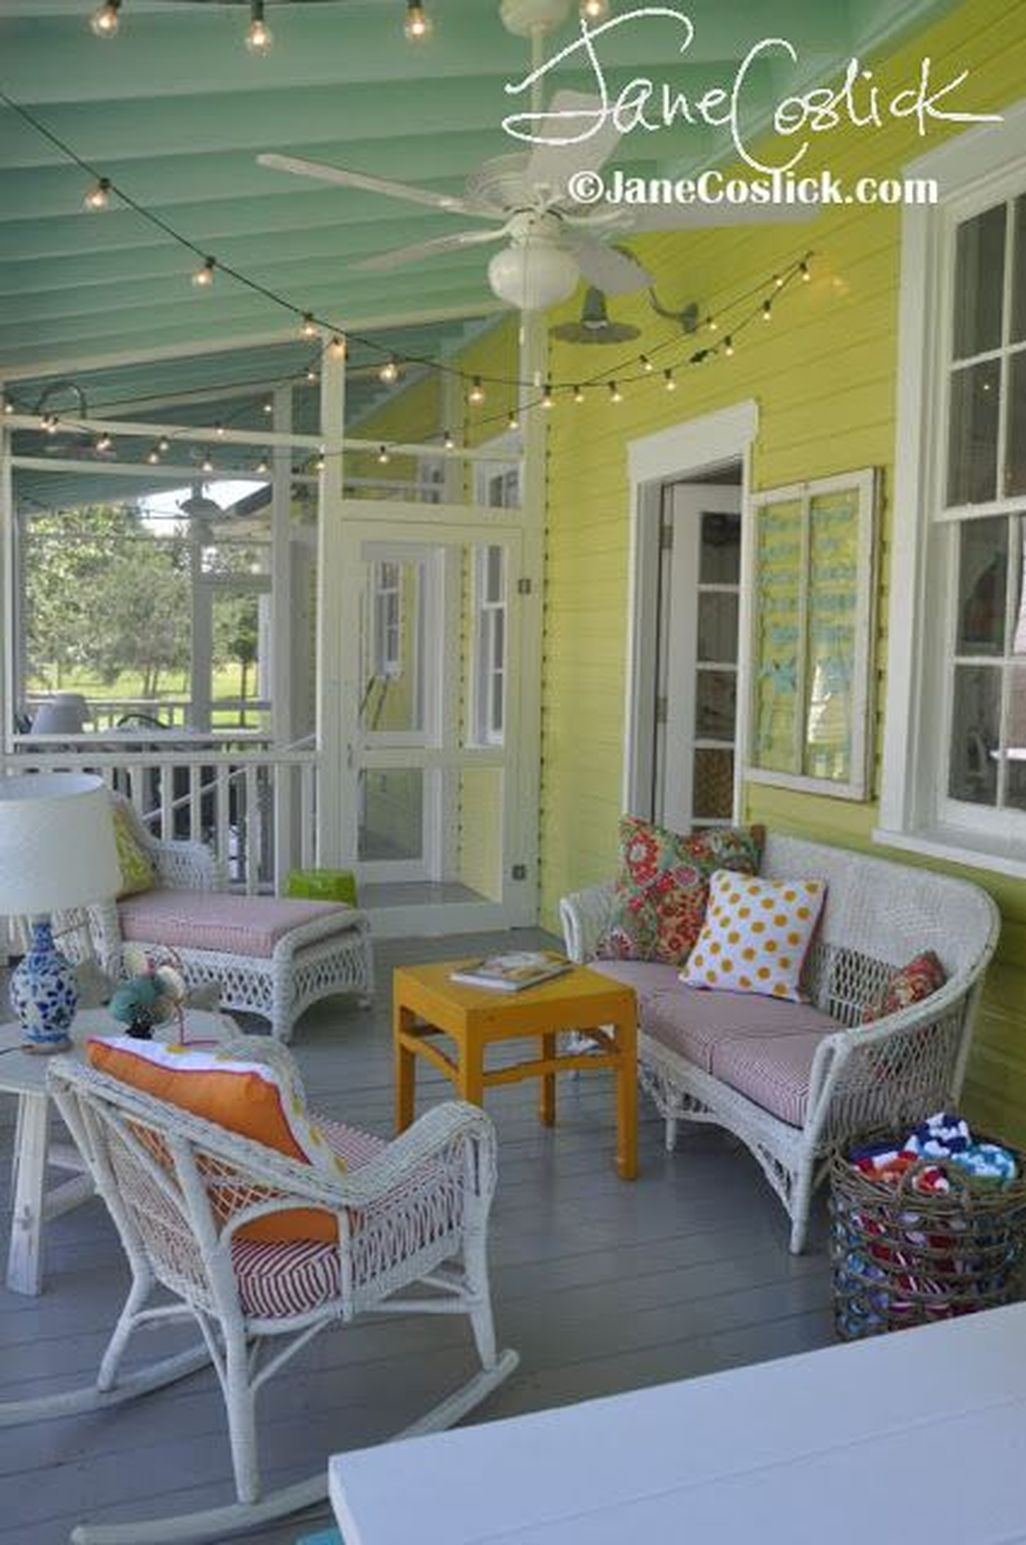 46 beautiful and colorful porch design outdoor and garden ideas rh pinterest com